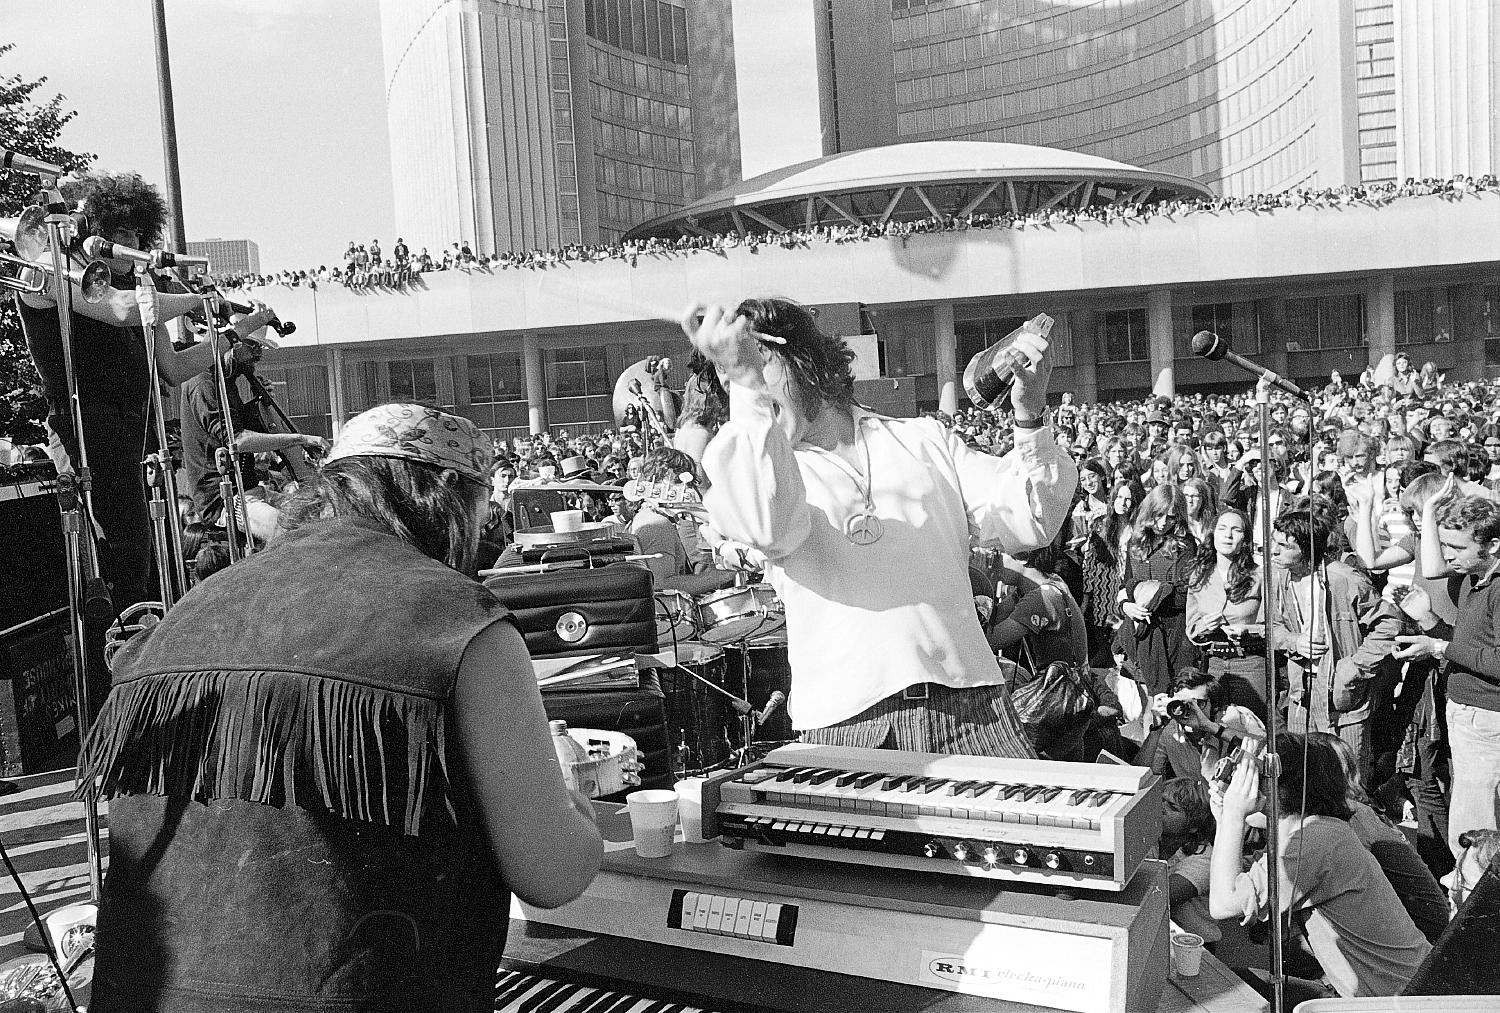 Lighthouse Concert at City Hall, Toronto, 1970.